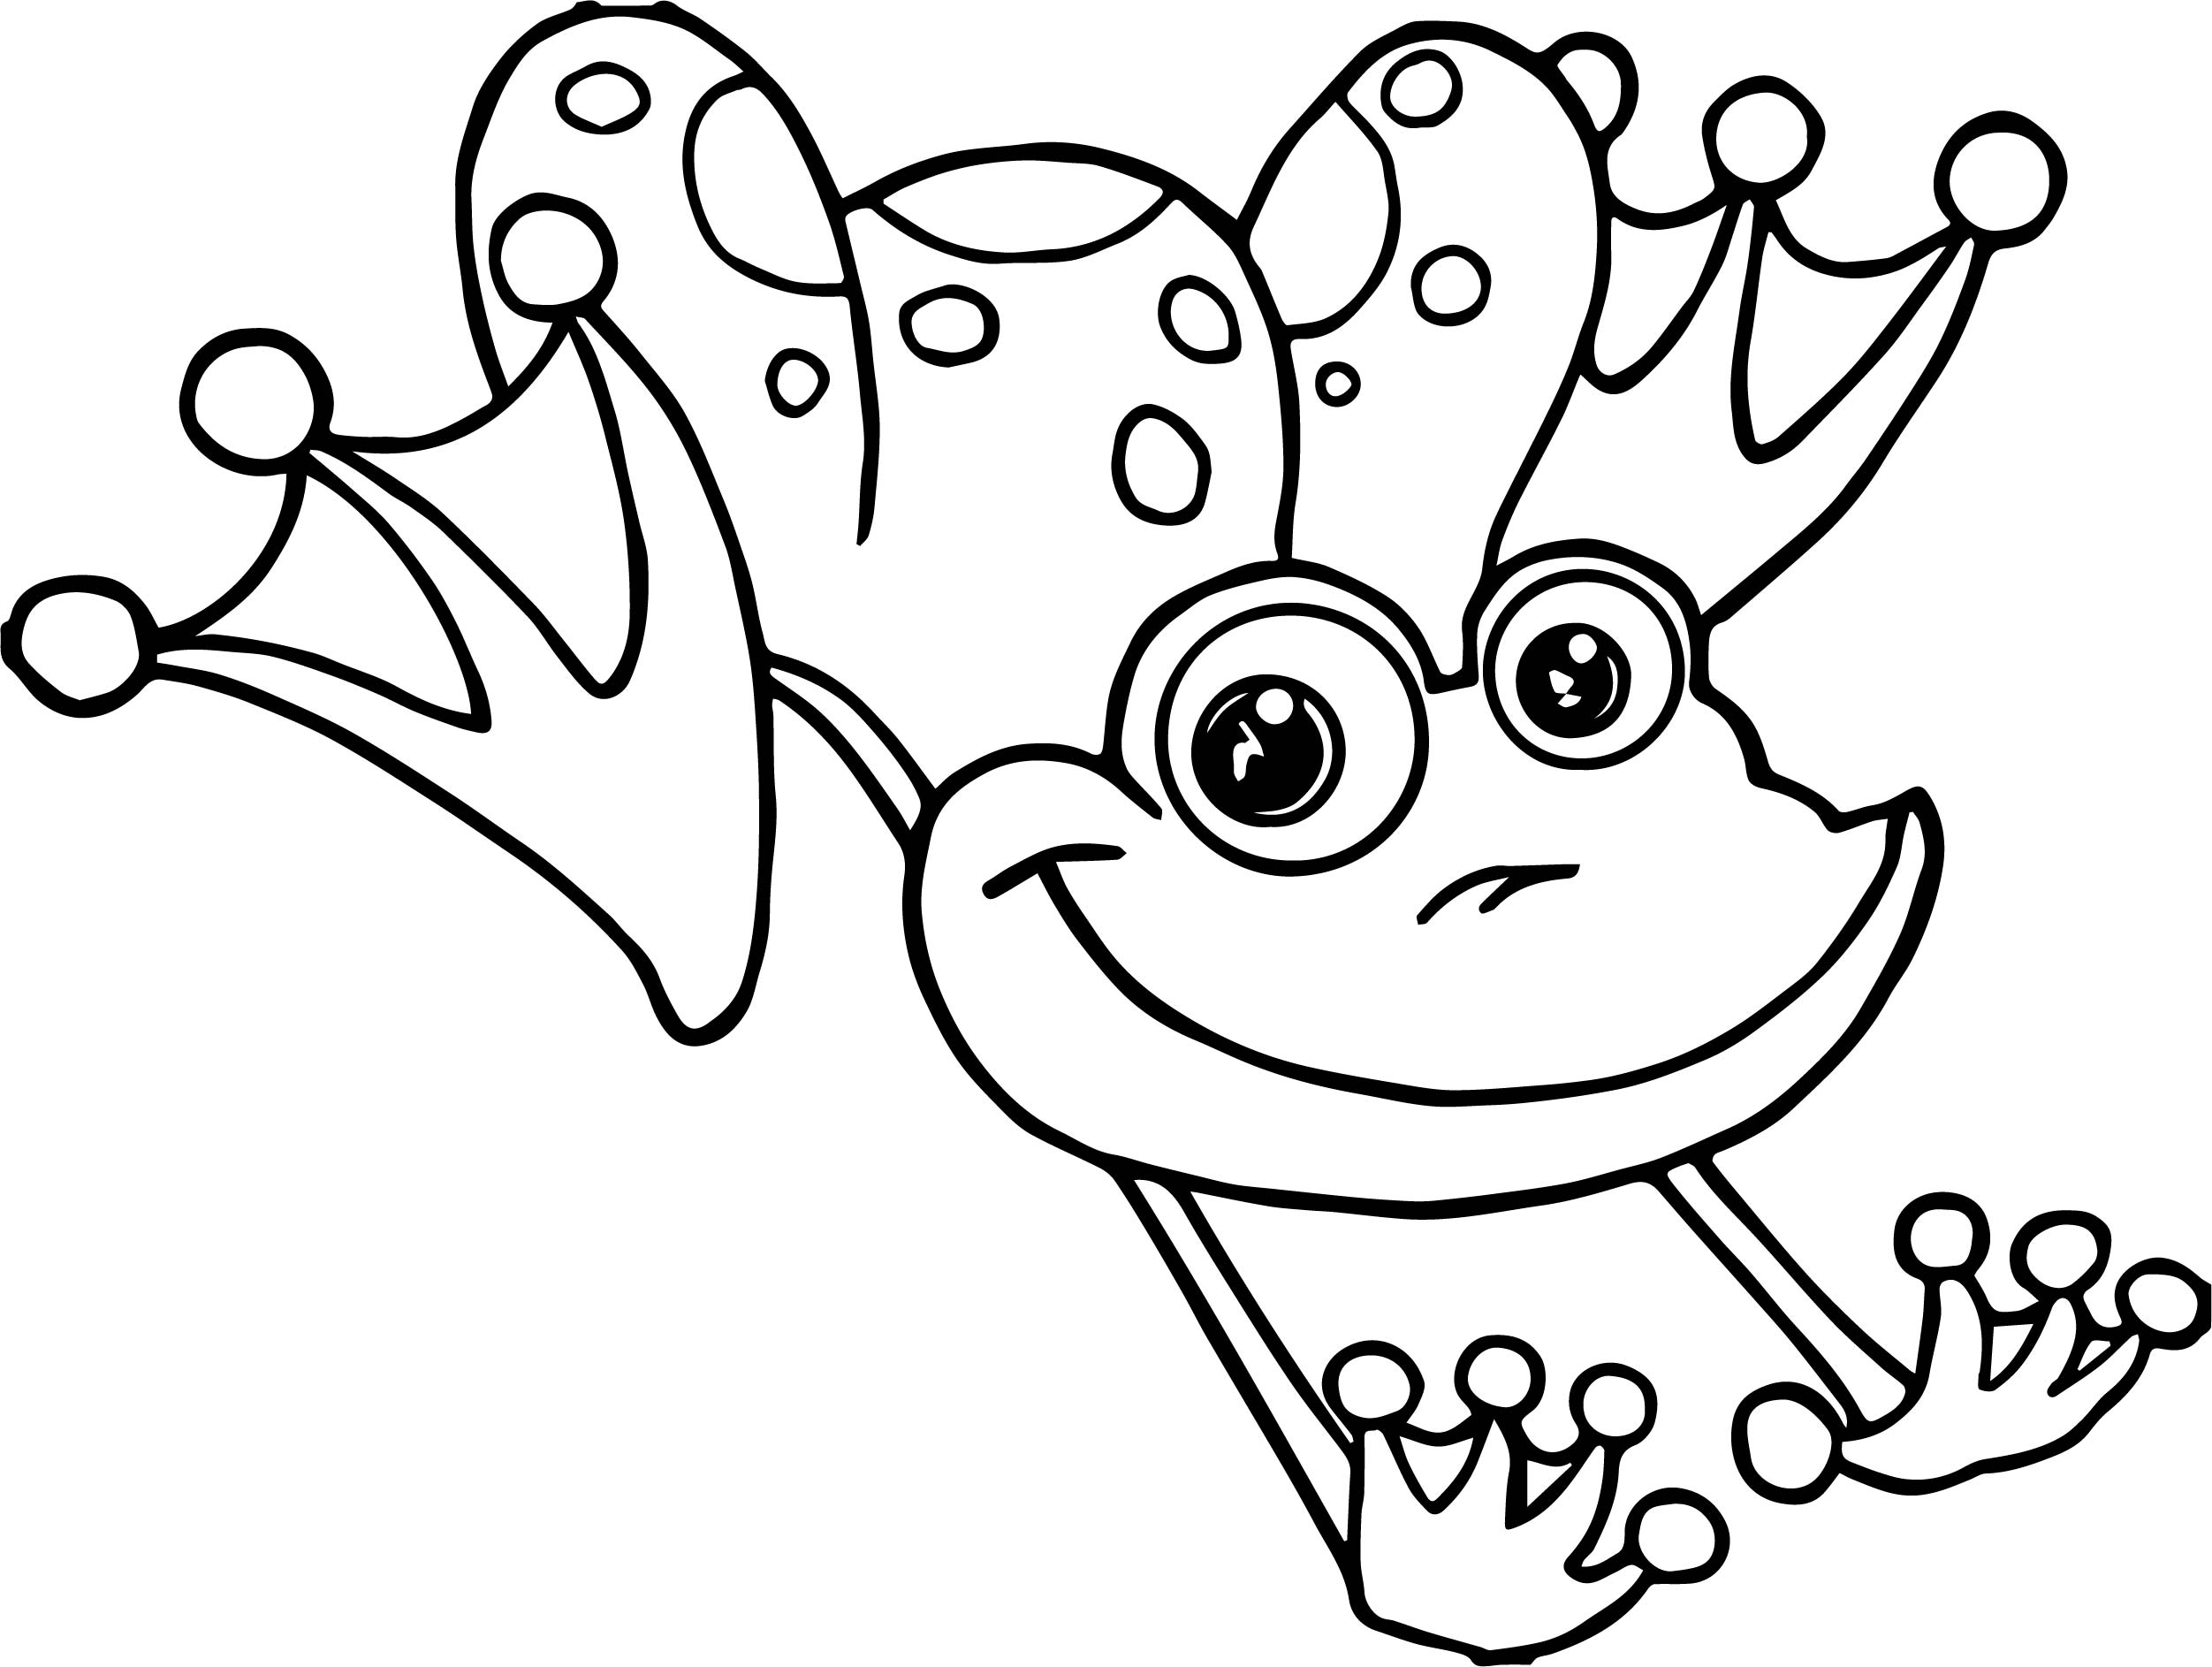 2503x1886 Frog Jumping Coloring Page Wecoloringpage And Jumper